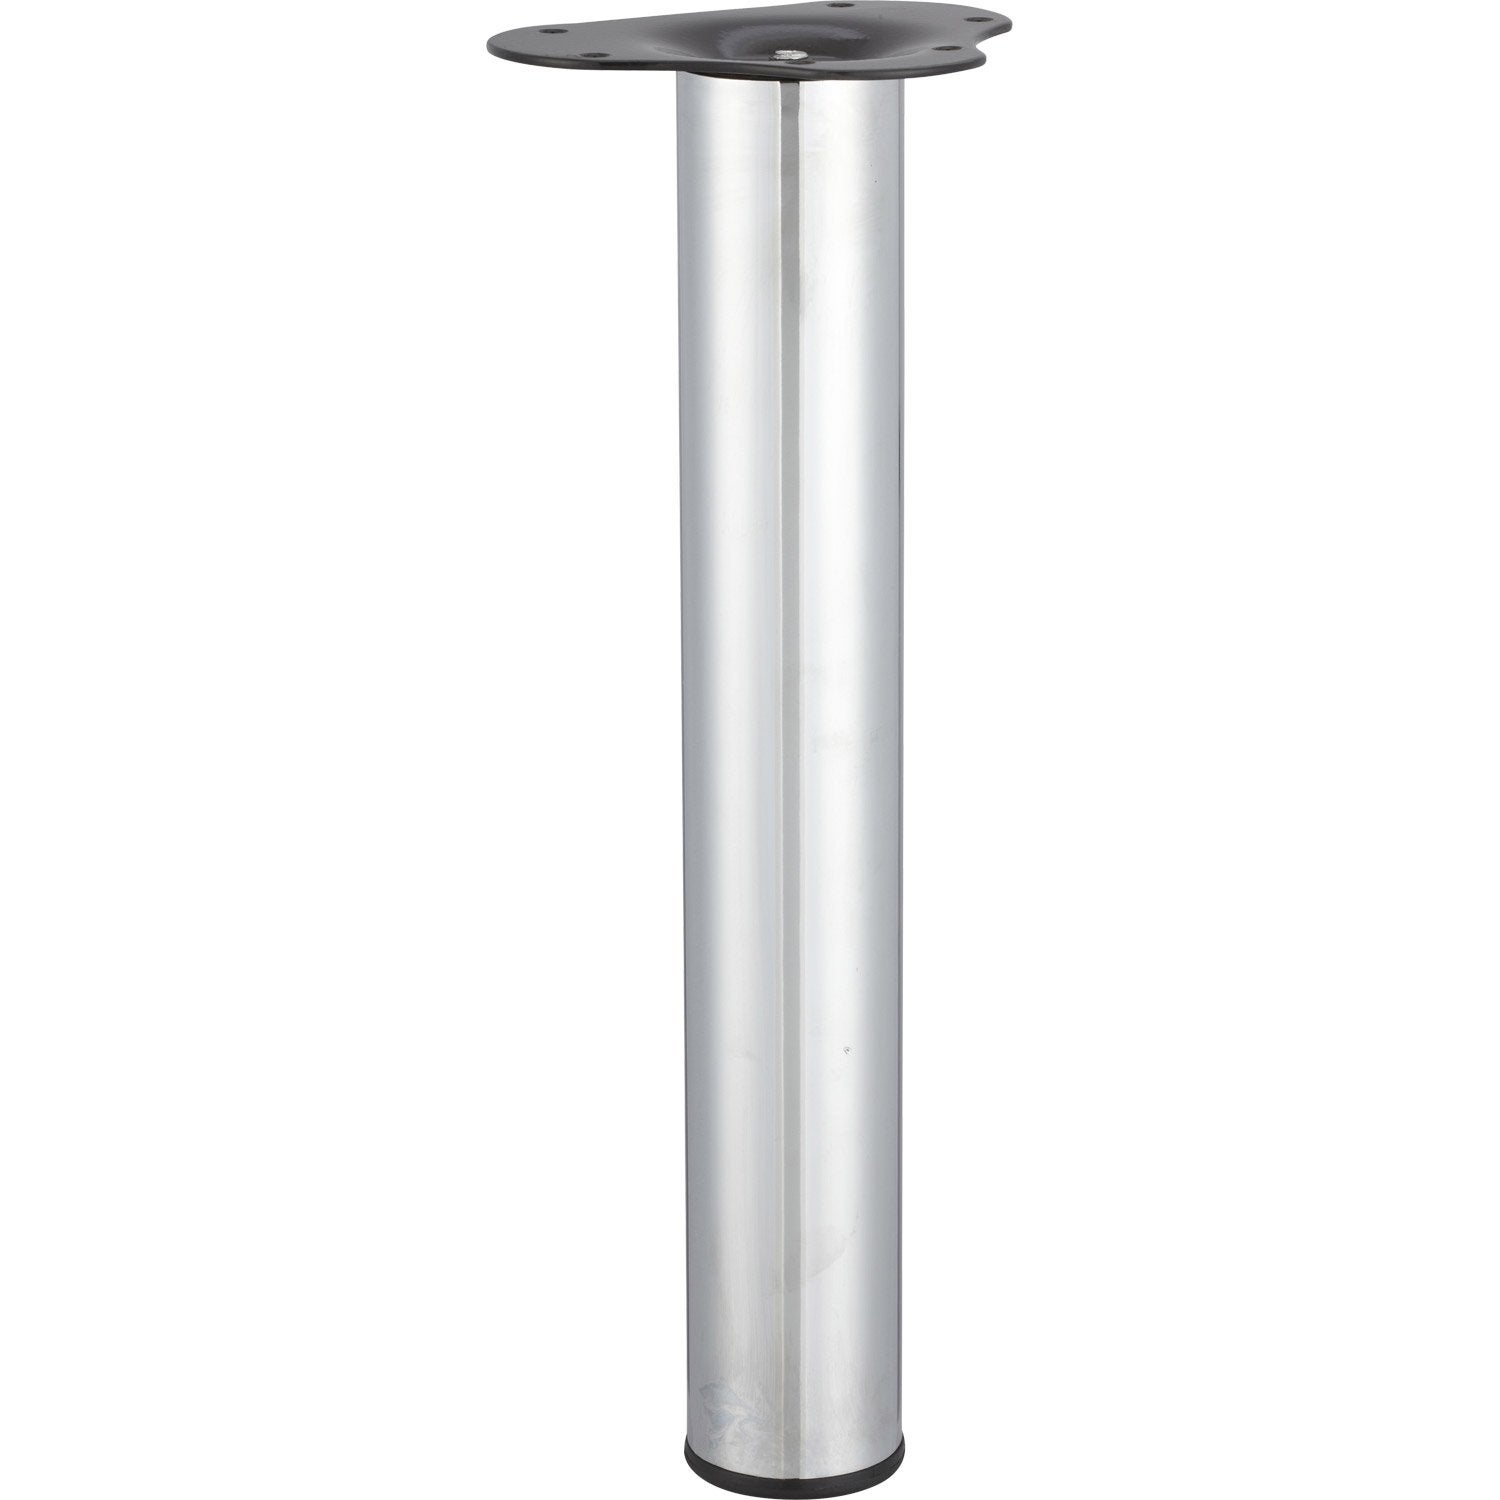 Pied de table basse cylindrique r glable acier chrom gris for Leroy merlin table basse